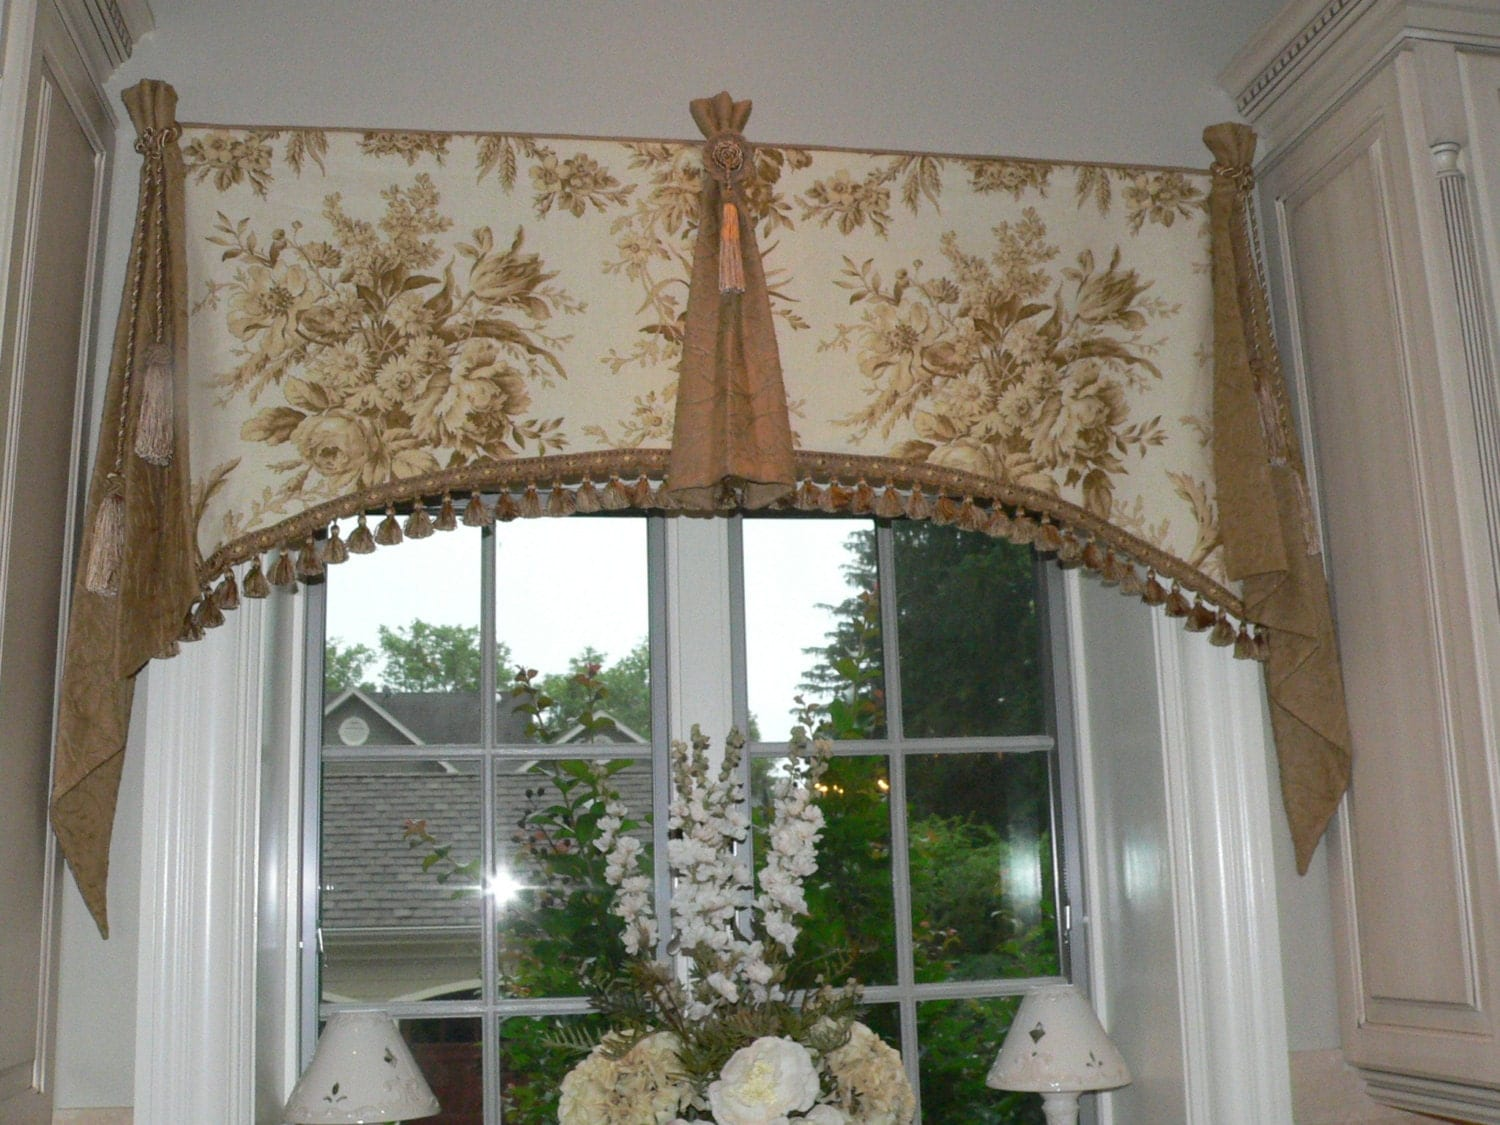 Chandeliers pendant lights for French country windows